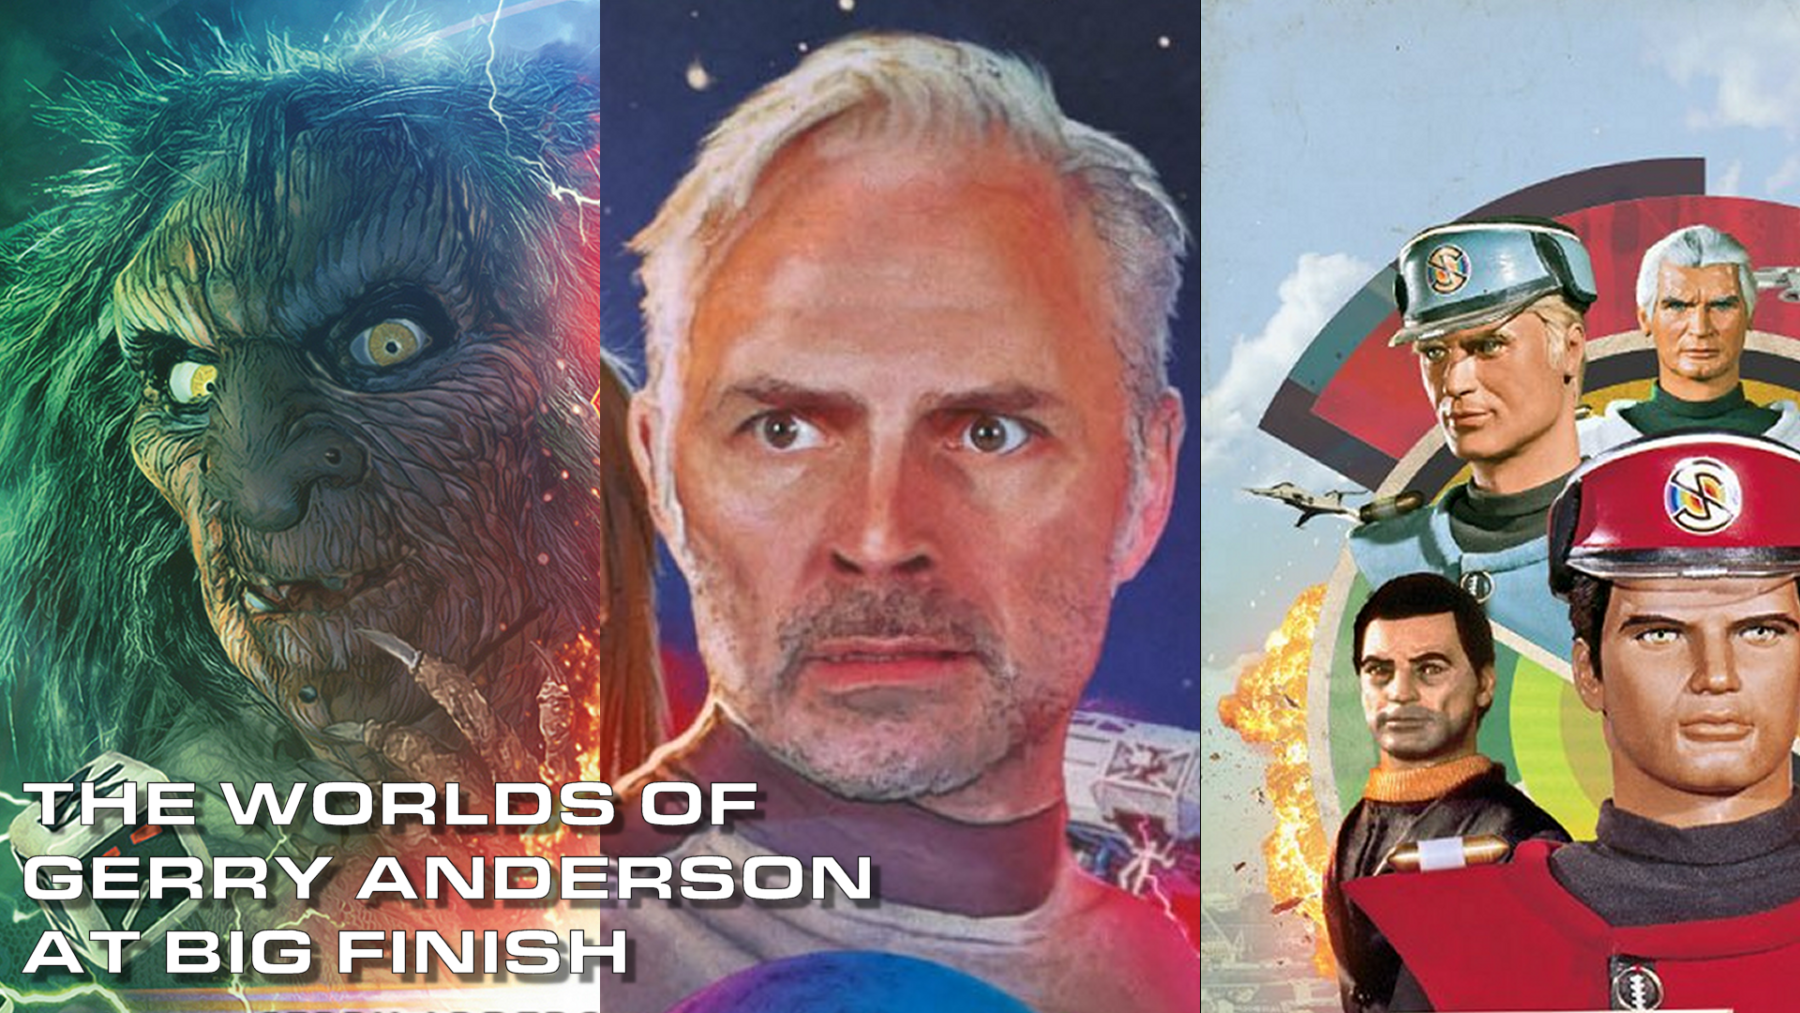 Anderson Entertainment signs co-production deal with Big Finish Productions to produce a range of new Gerry Anderson audio content.